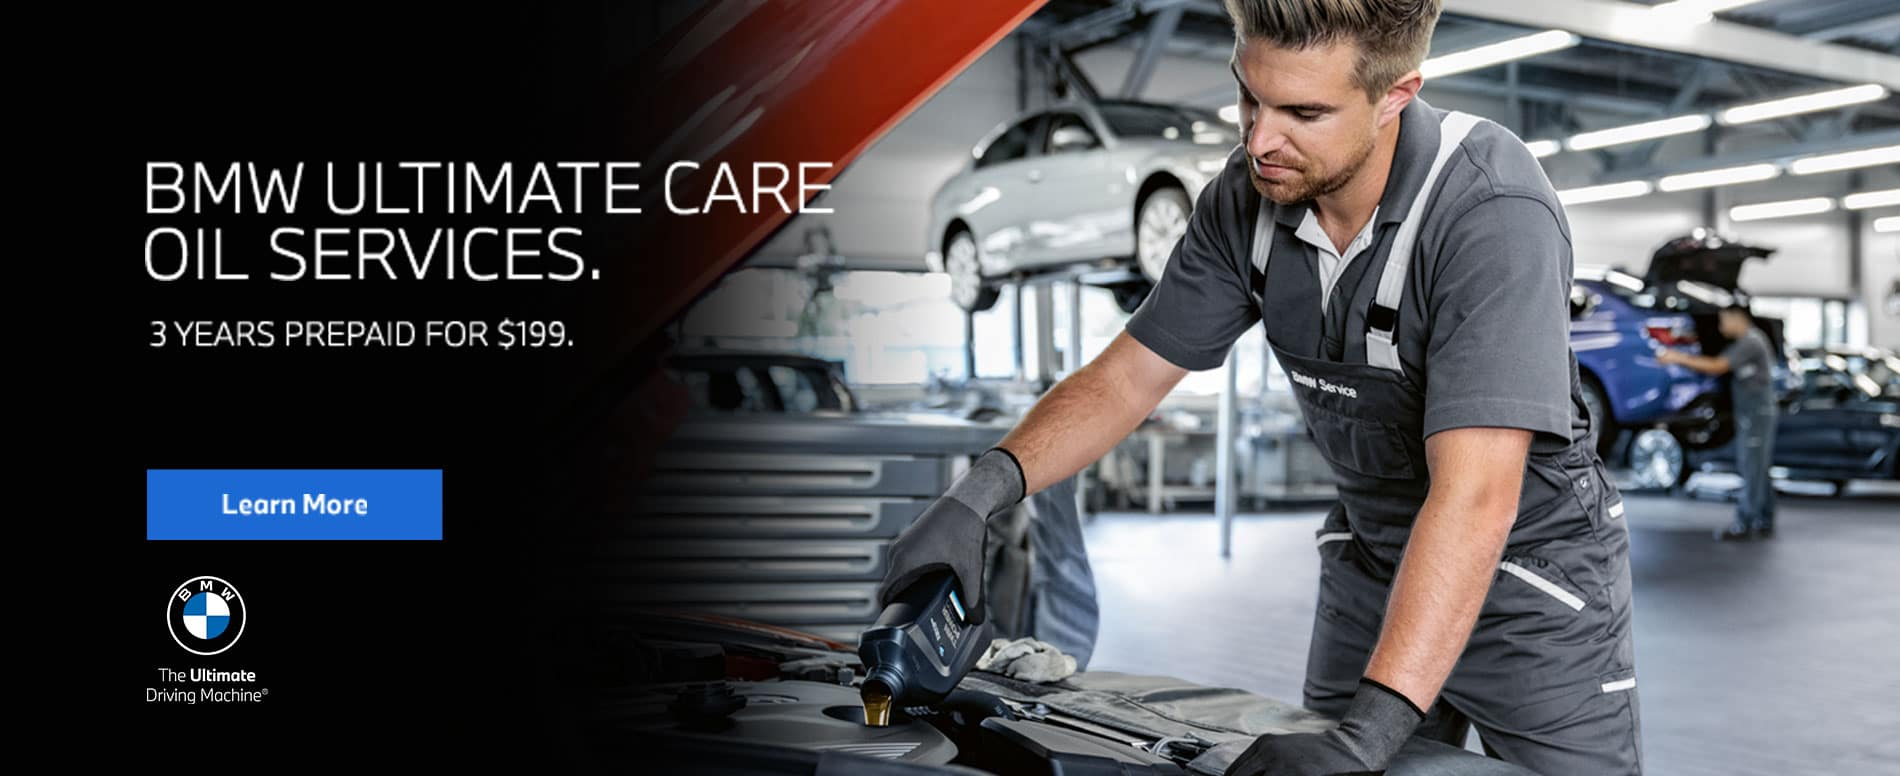 Ultimate Care Oil Services. 3 years prepaid for $199.